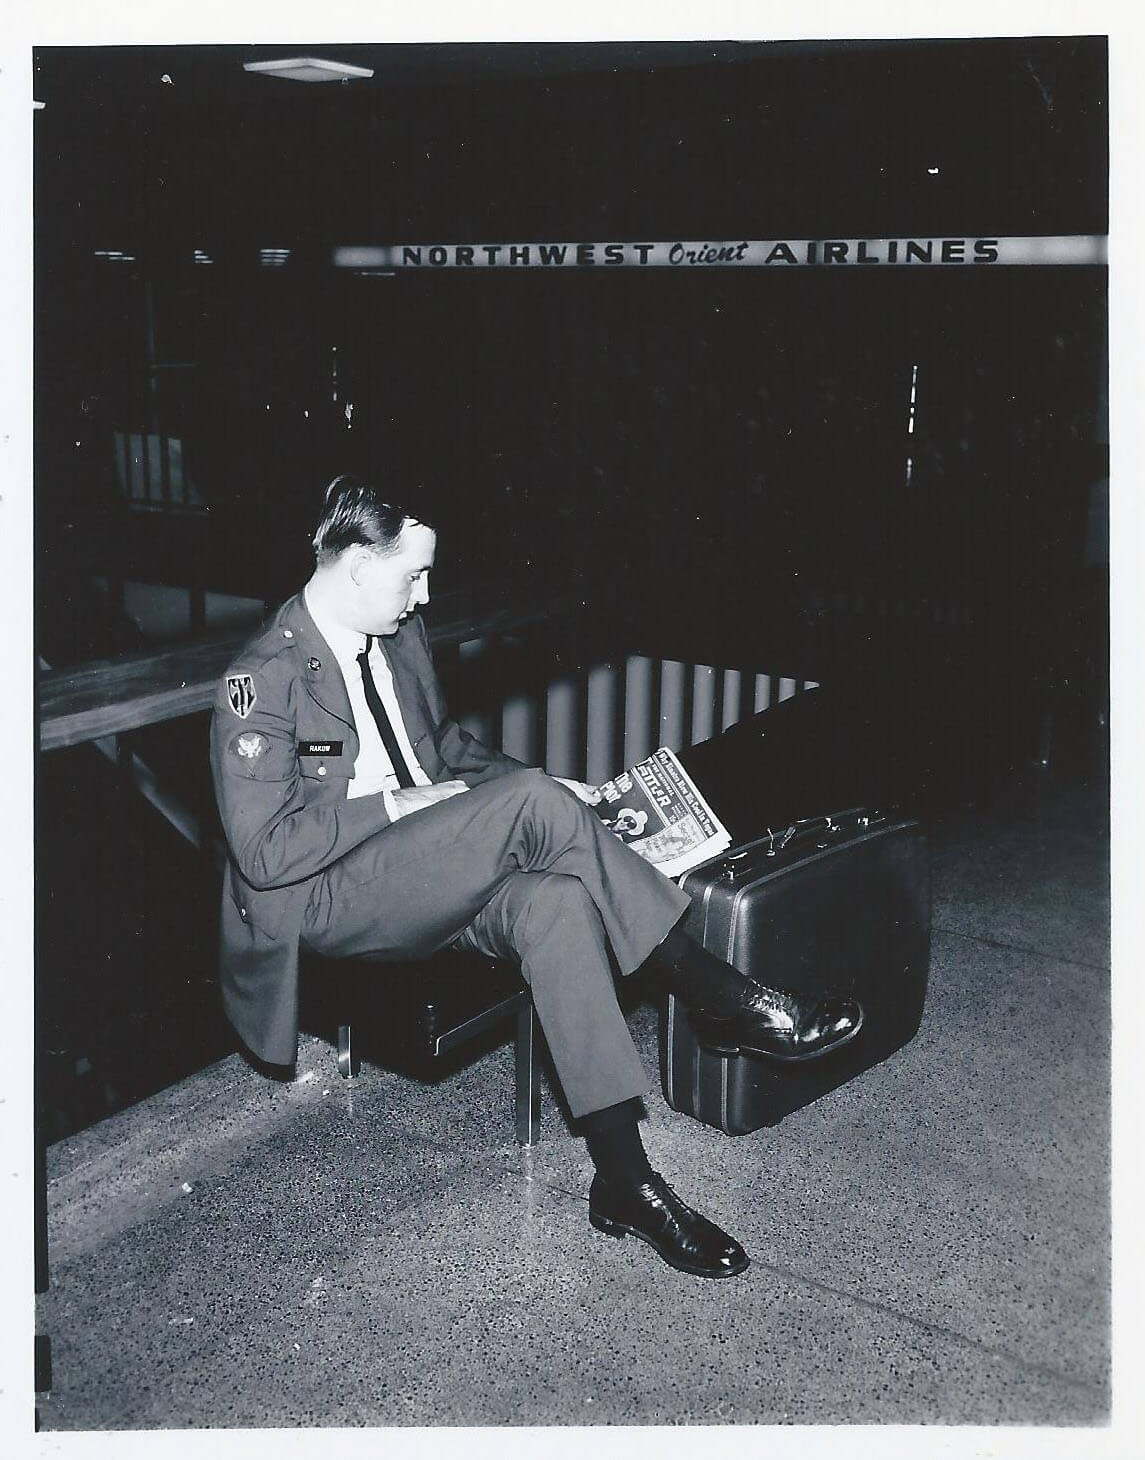 A soldier in his dress blues sits in an airport with his luggage, reading a newspaper.